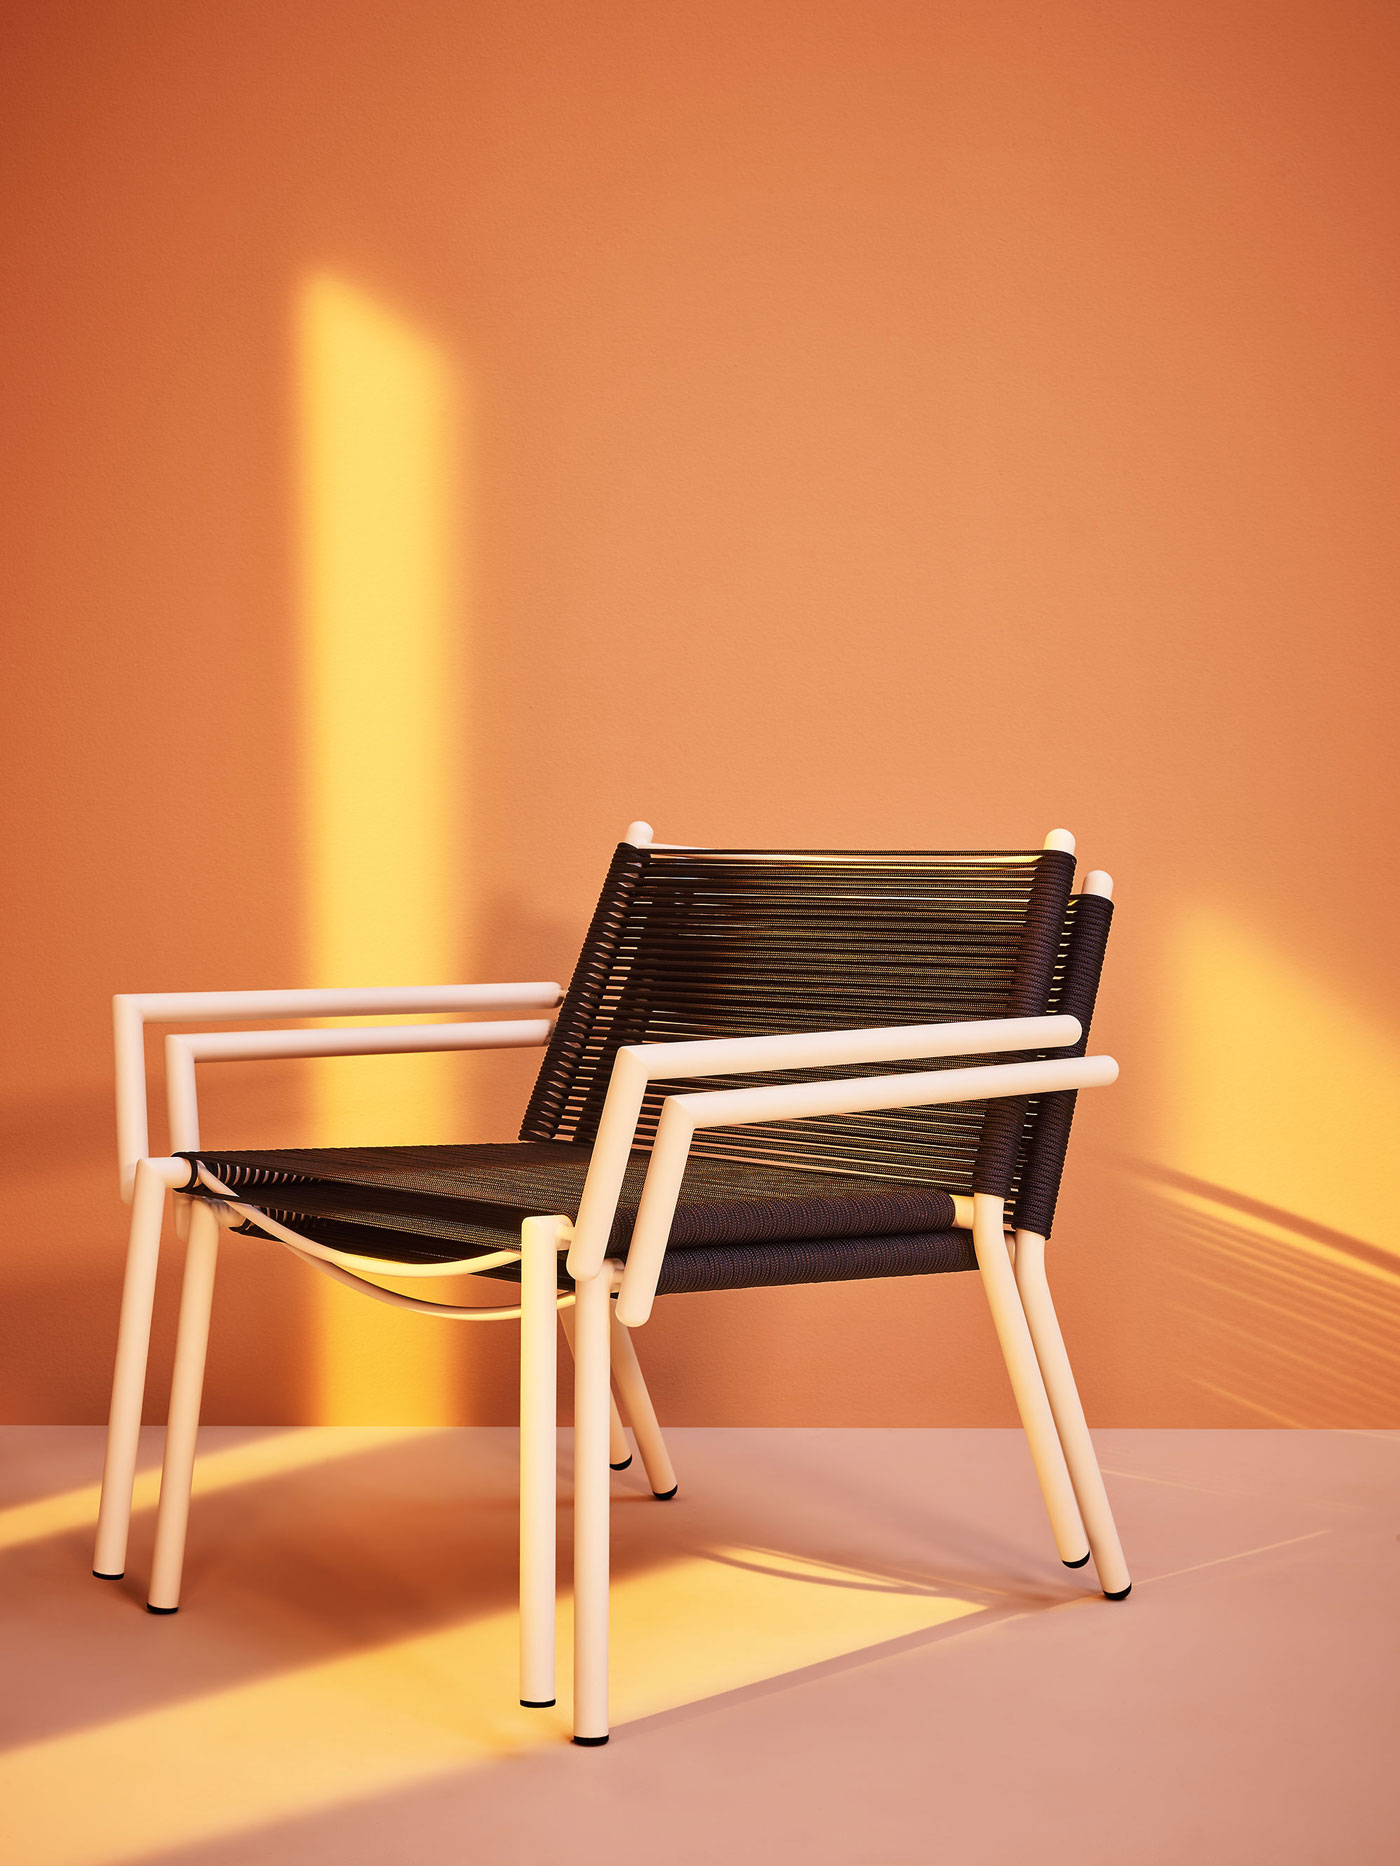 Sedia Lounge Eleven/ Eleven Lounge Chair  - Outdoor Lounge Chair made with tubolar steel